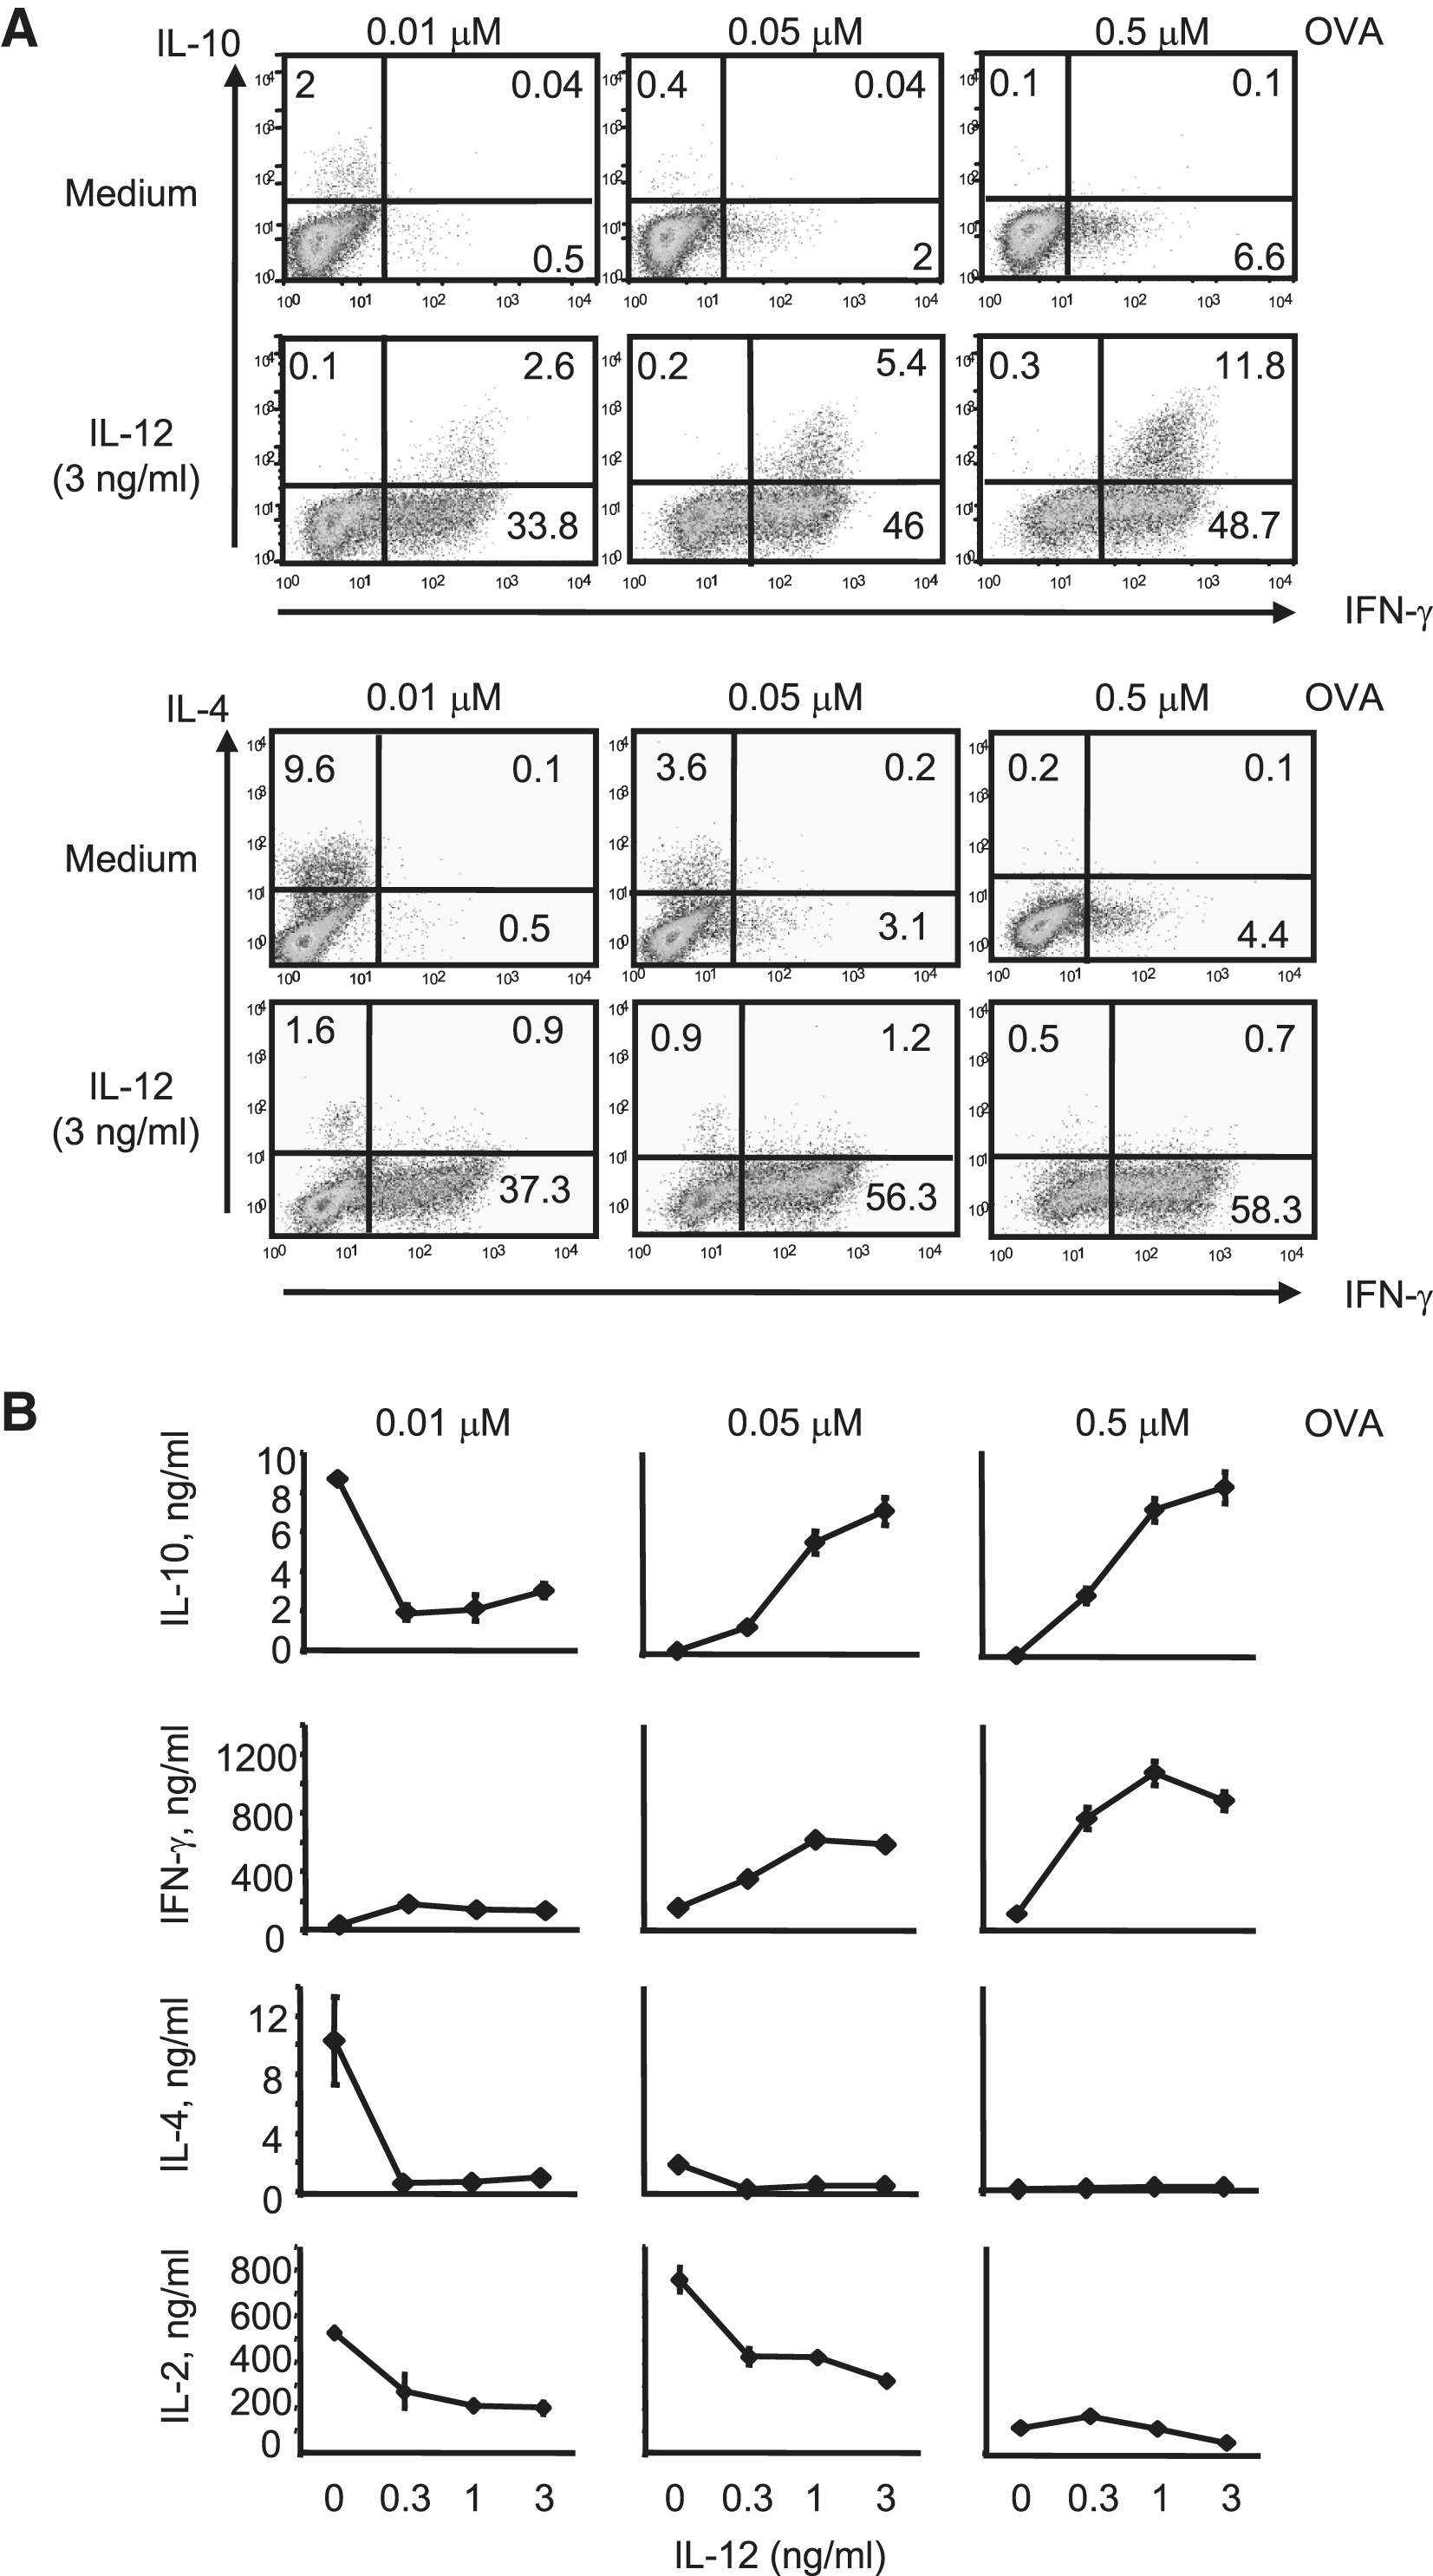 Interleukin-10 Production by Th1 Cells Requires